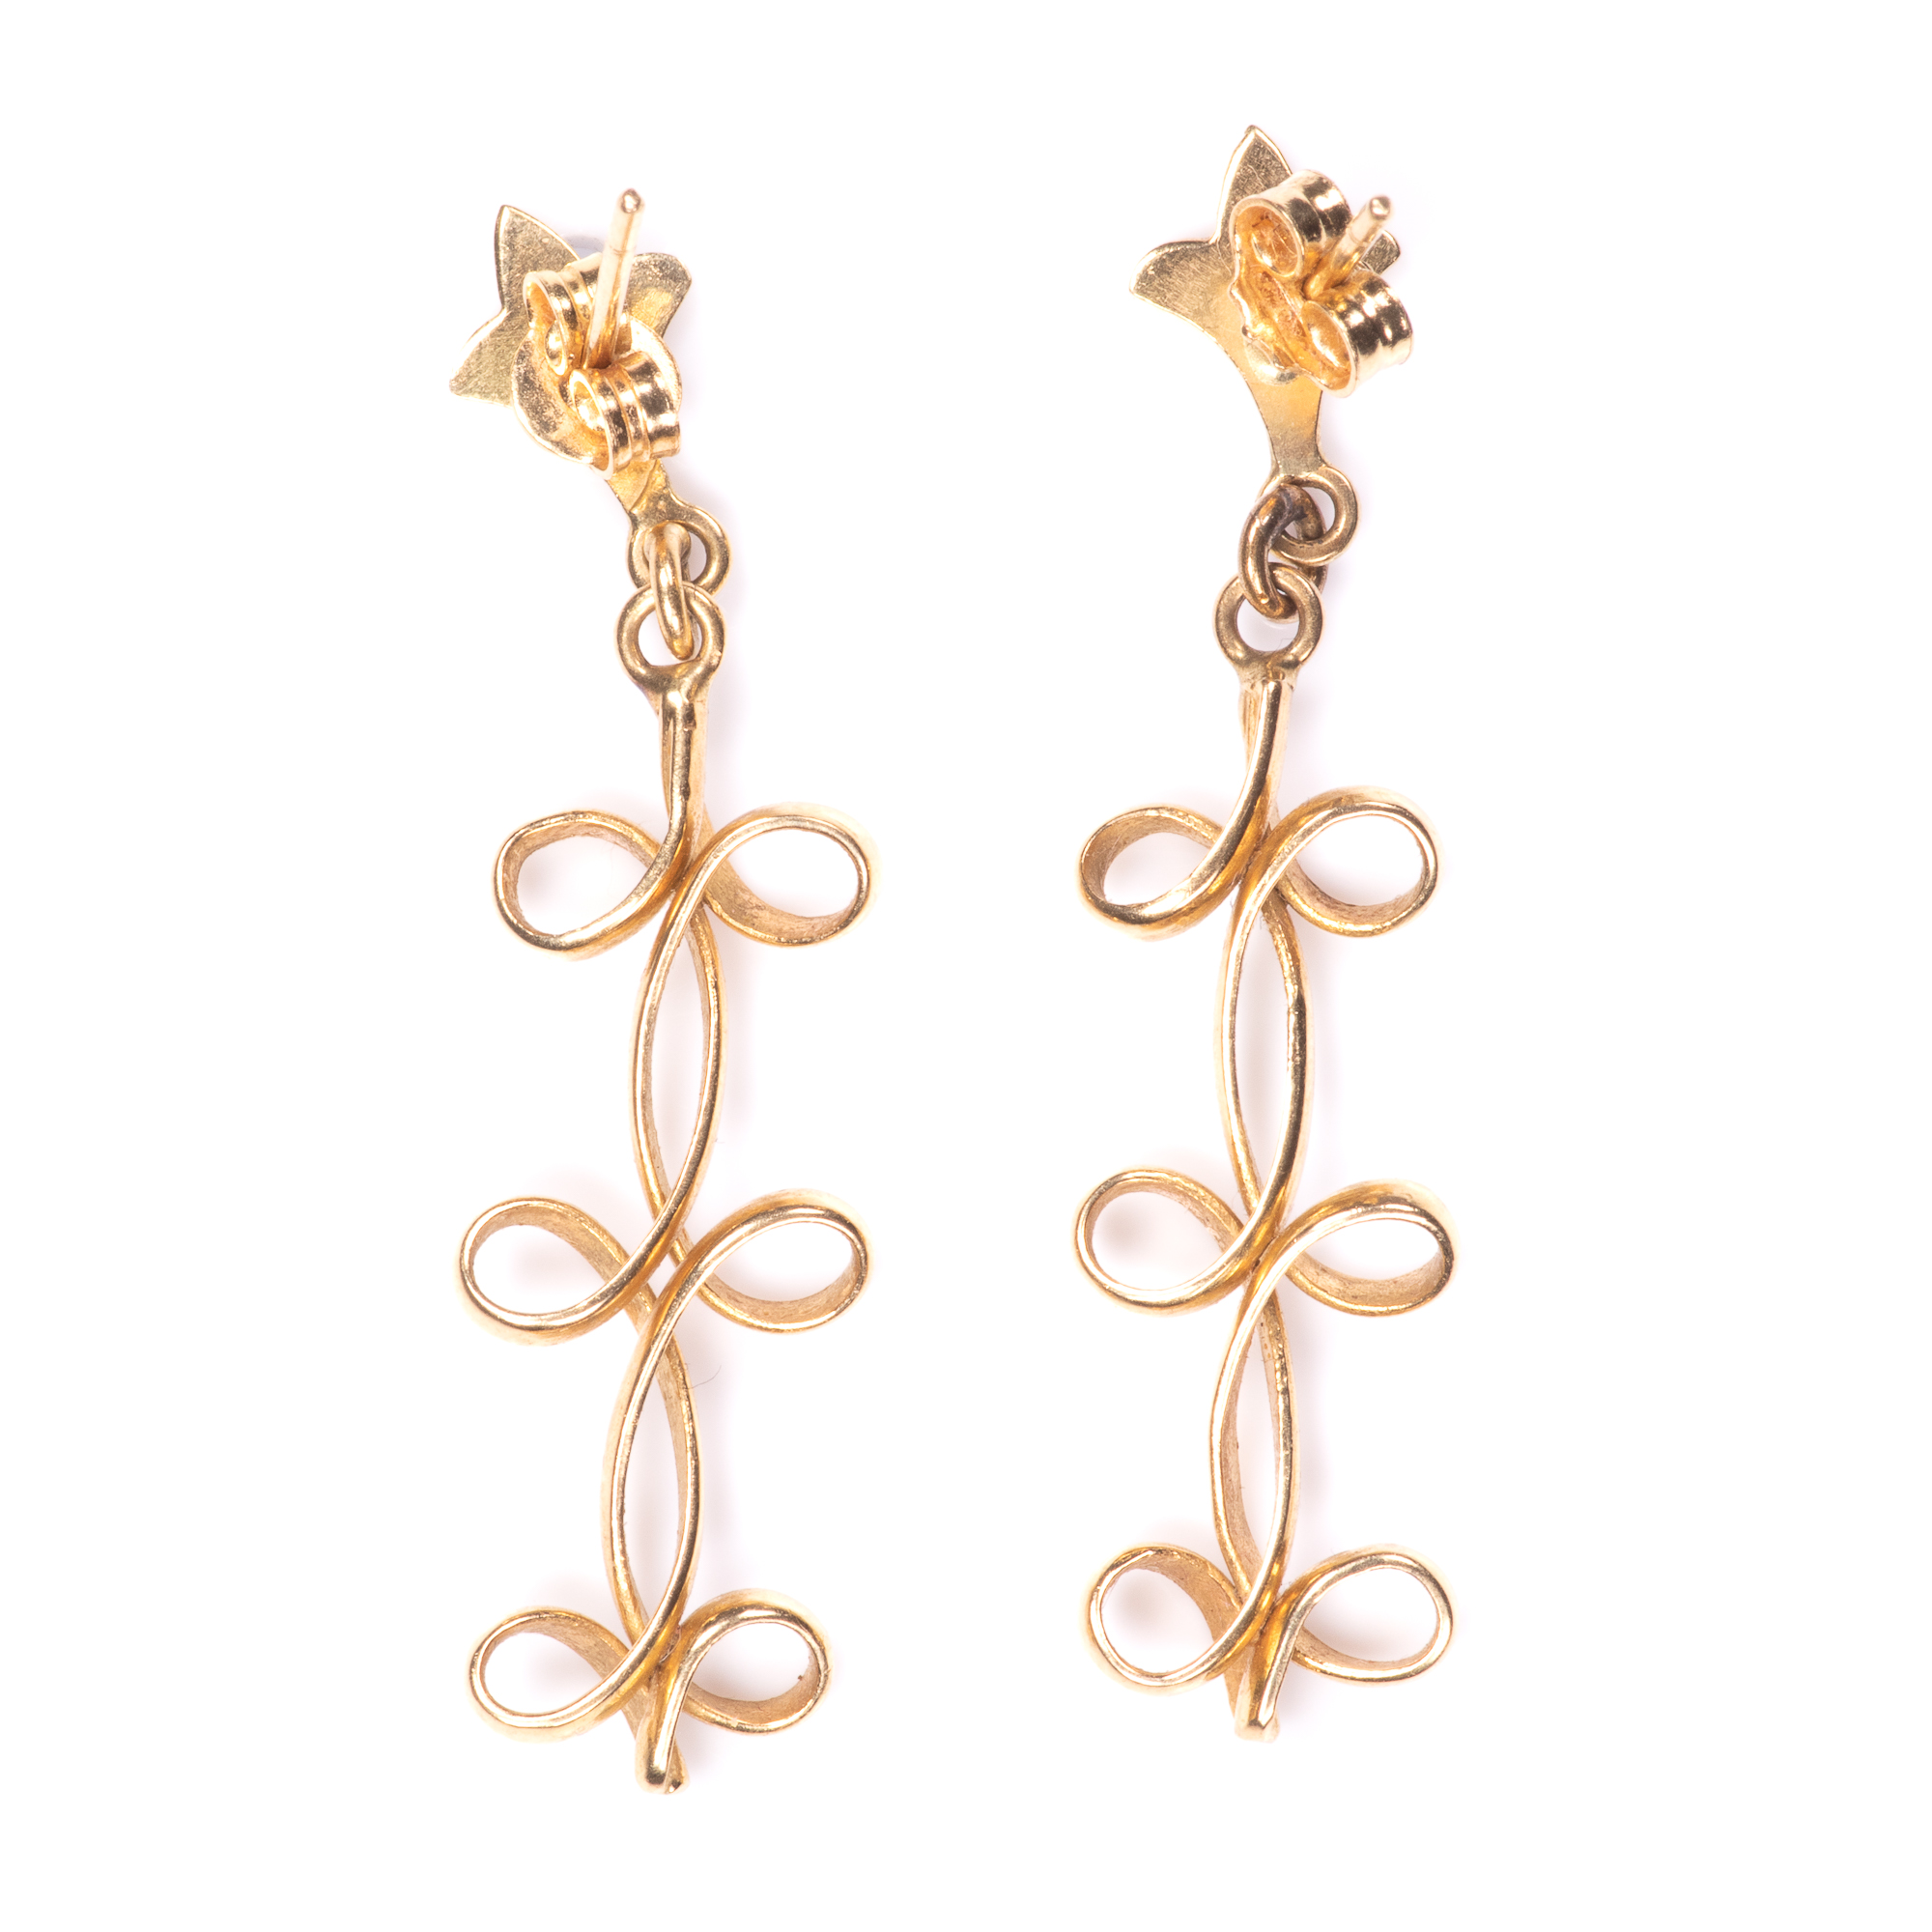 18ct Gold Earrings - Image 3 of 7